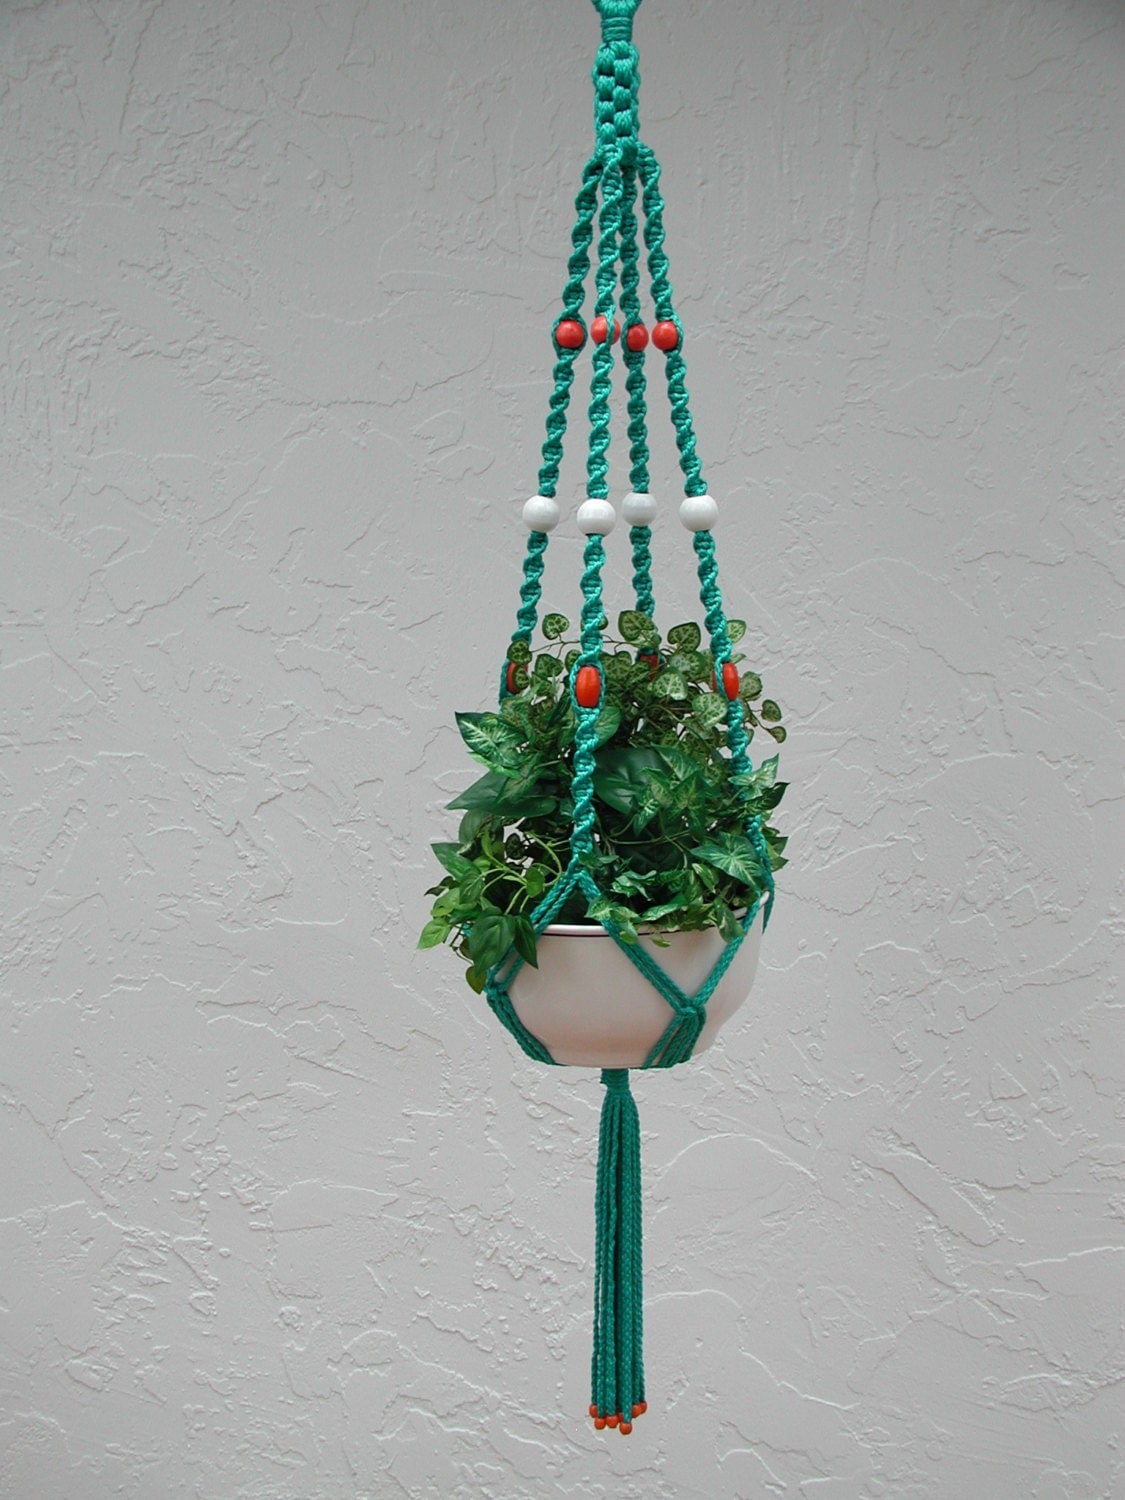 Hanging Macrame Plant Pot Holder By Rrdesigns561 On Etsy